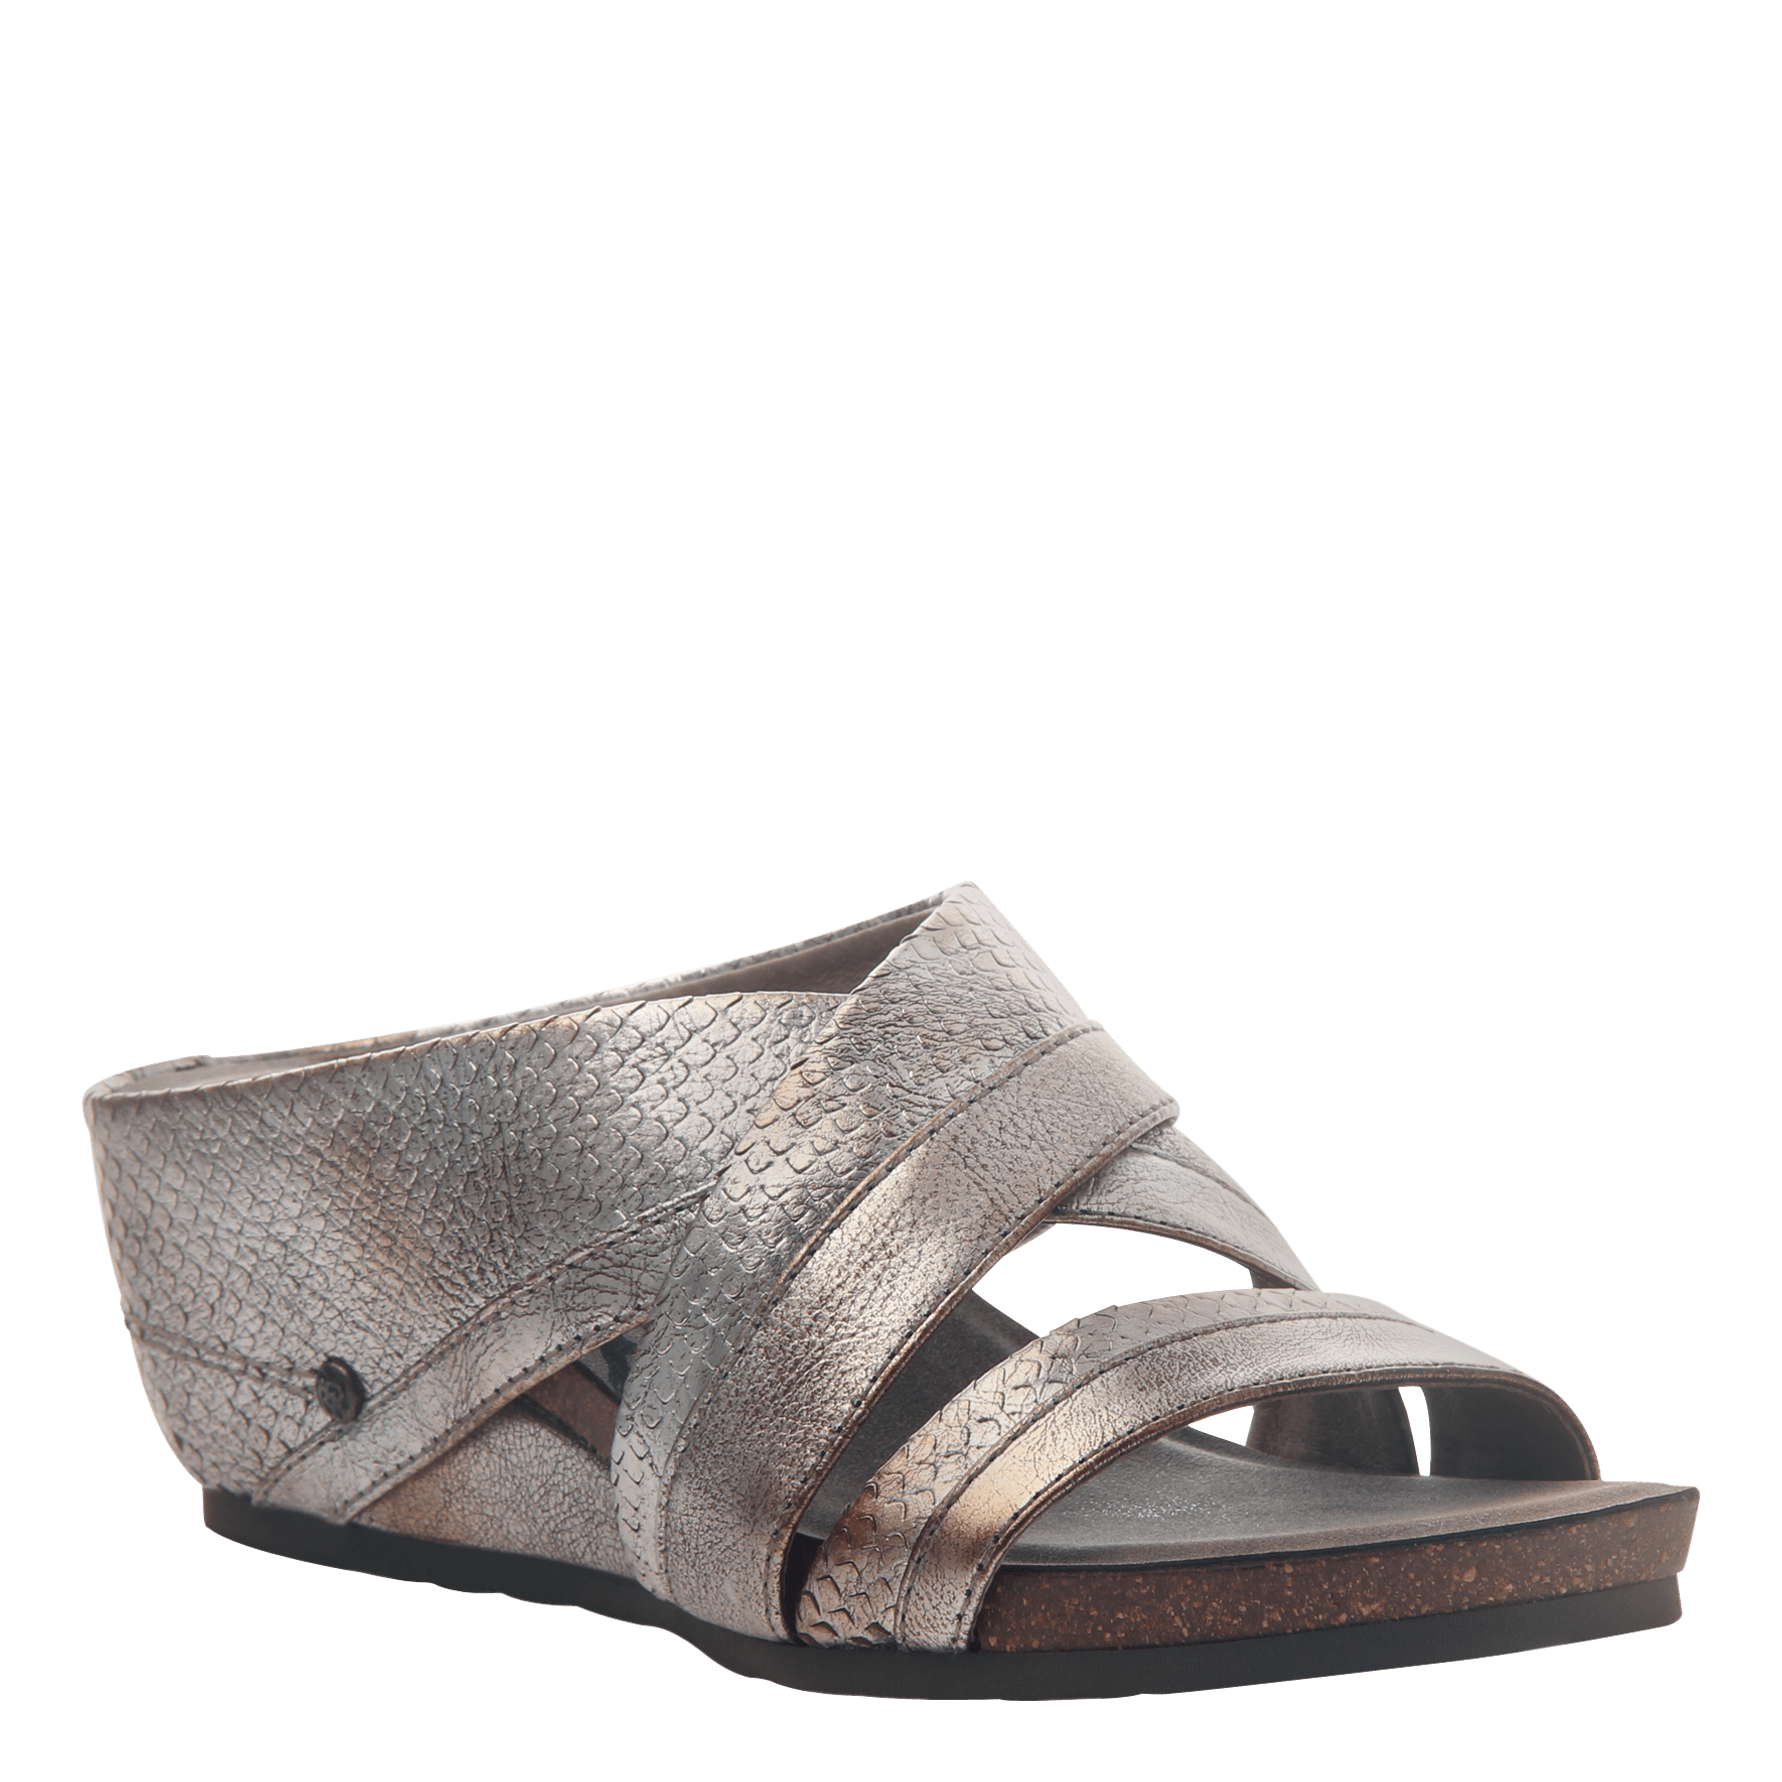 a2a115d084ed Womens slide sandal departure in silver